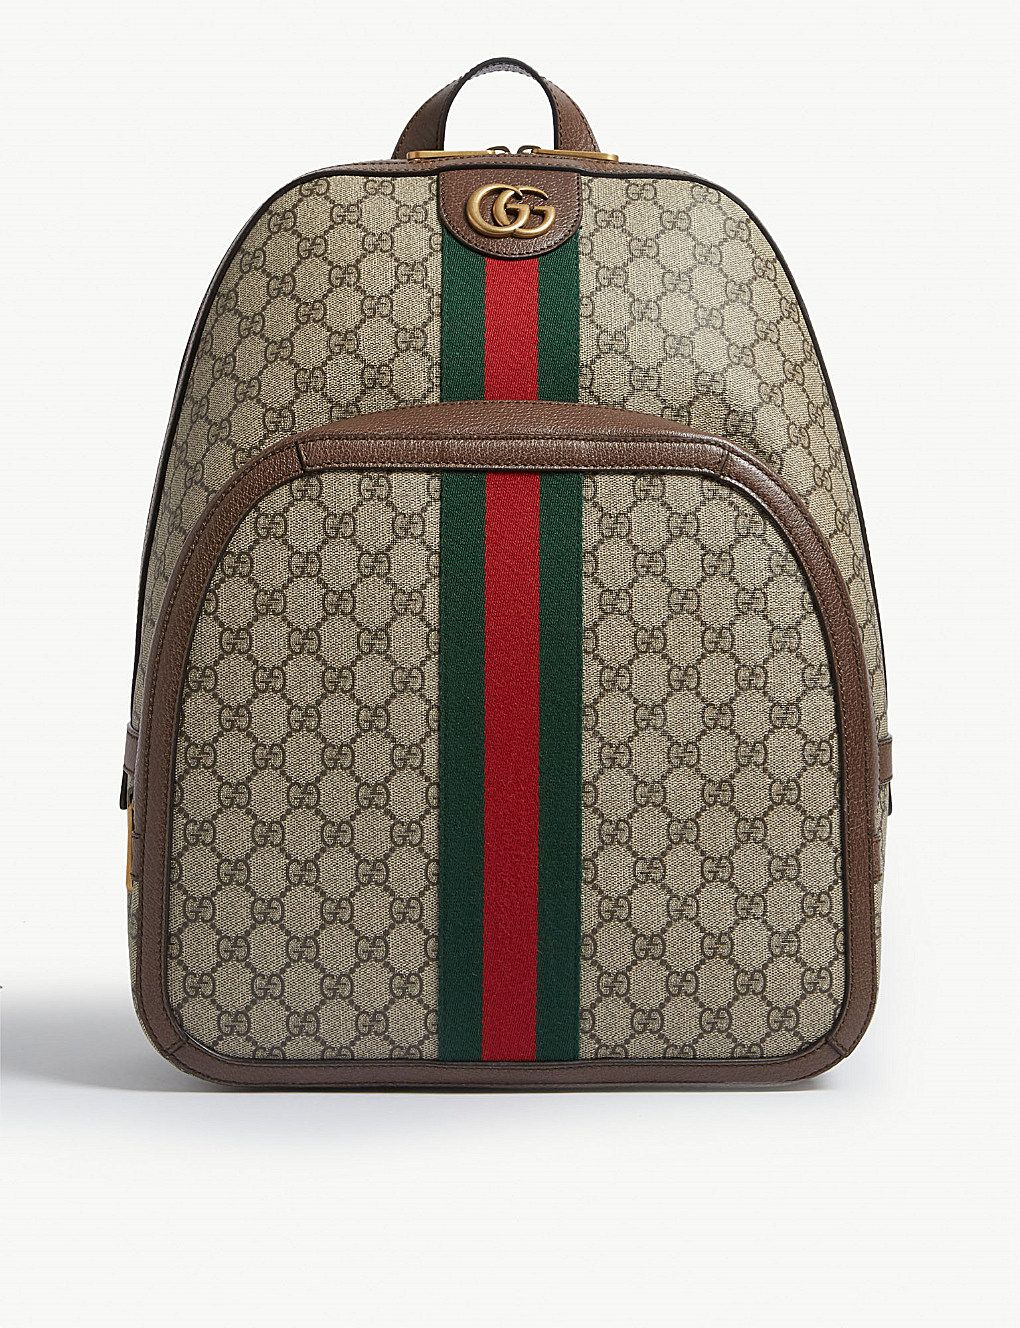 9be1c02b3f GUCCI - GG Supreme canvas and leather backpack | Selfridges.com